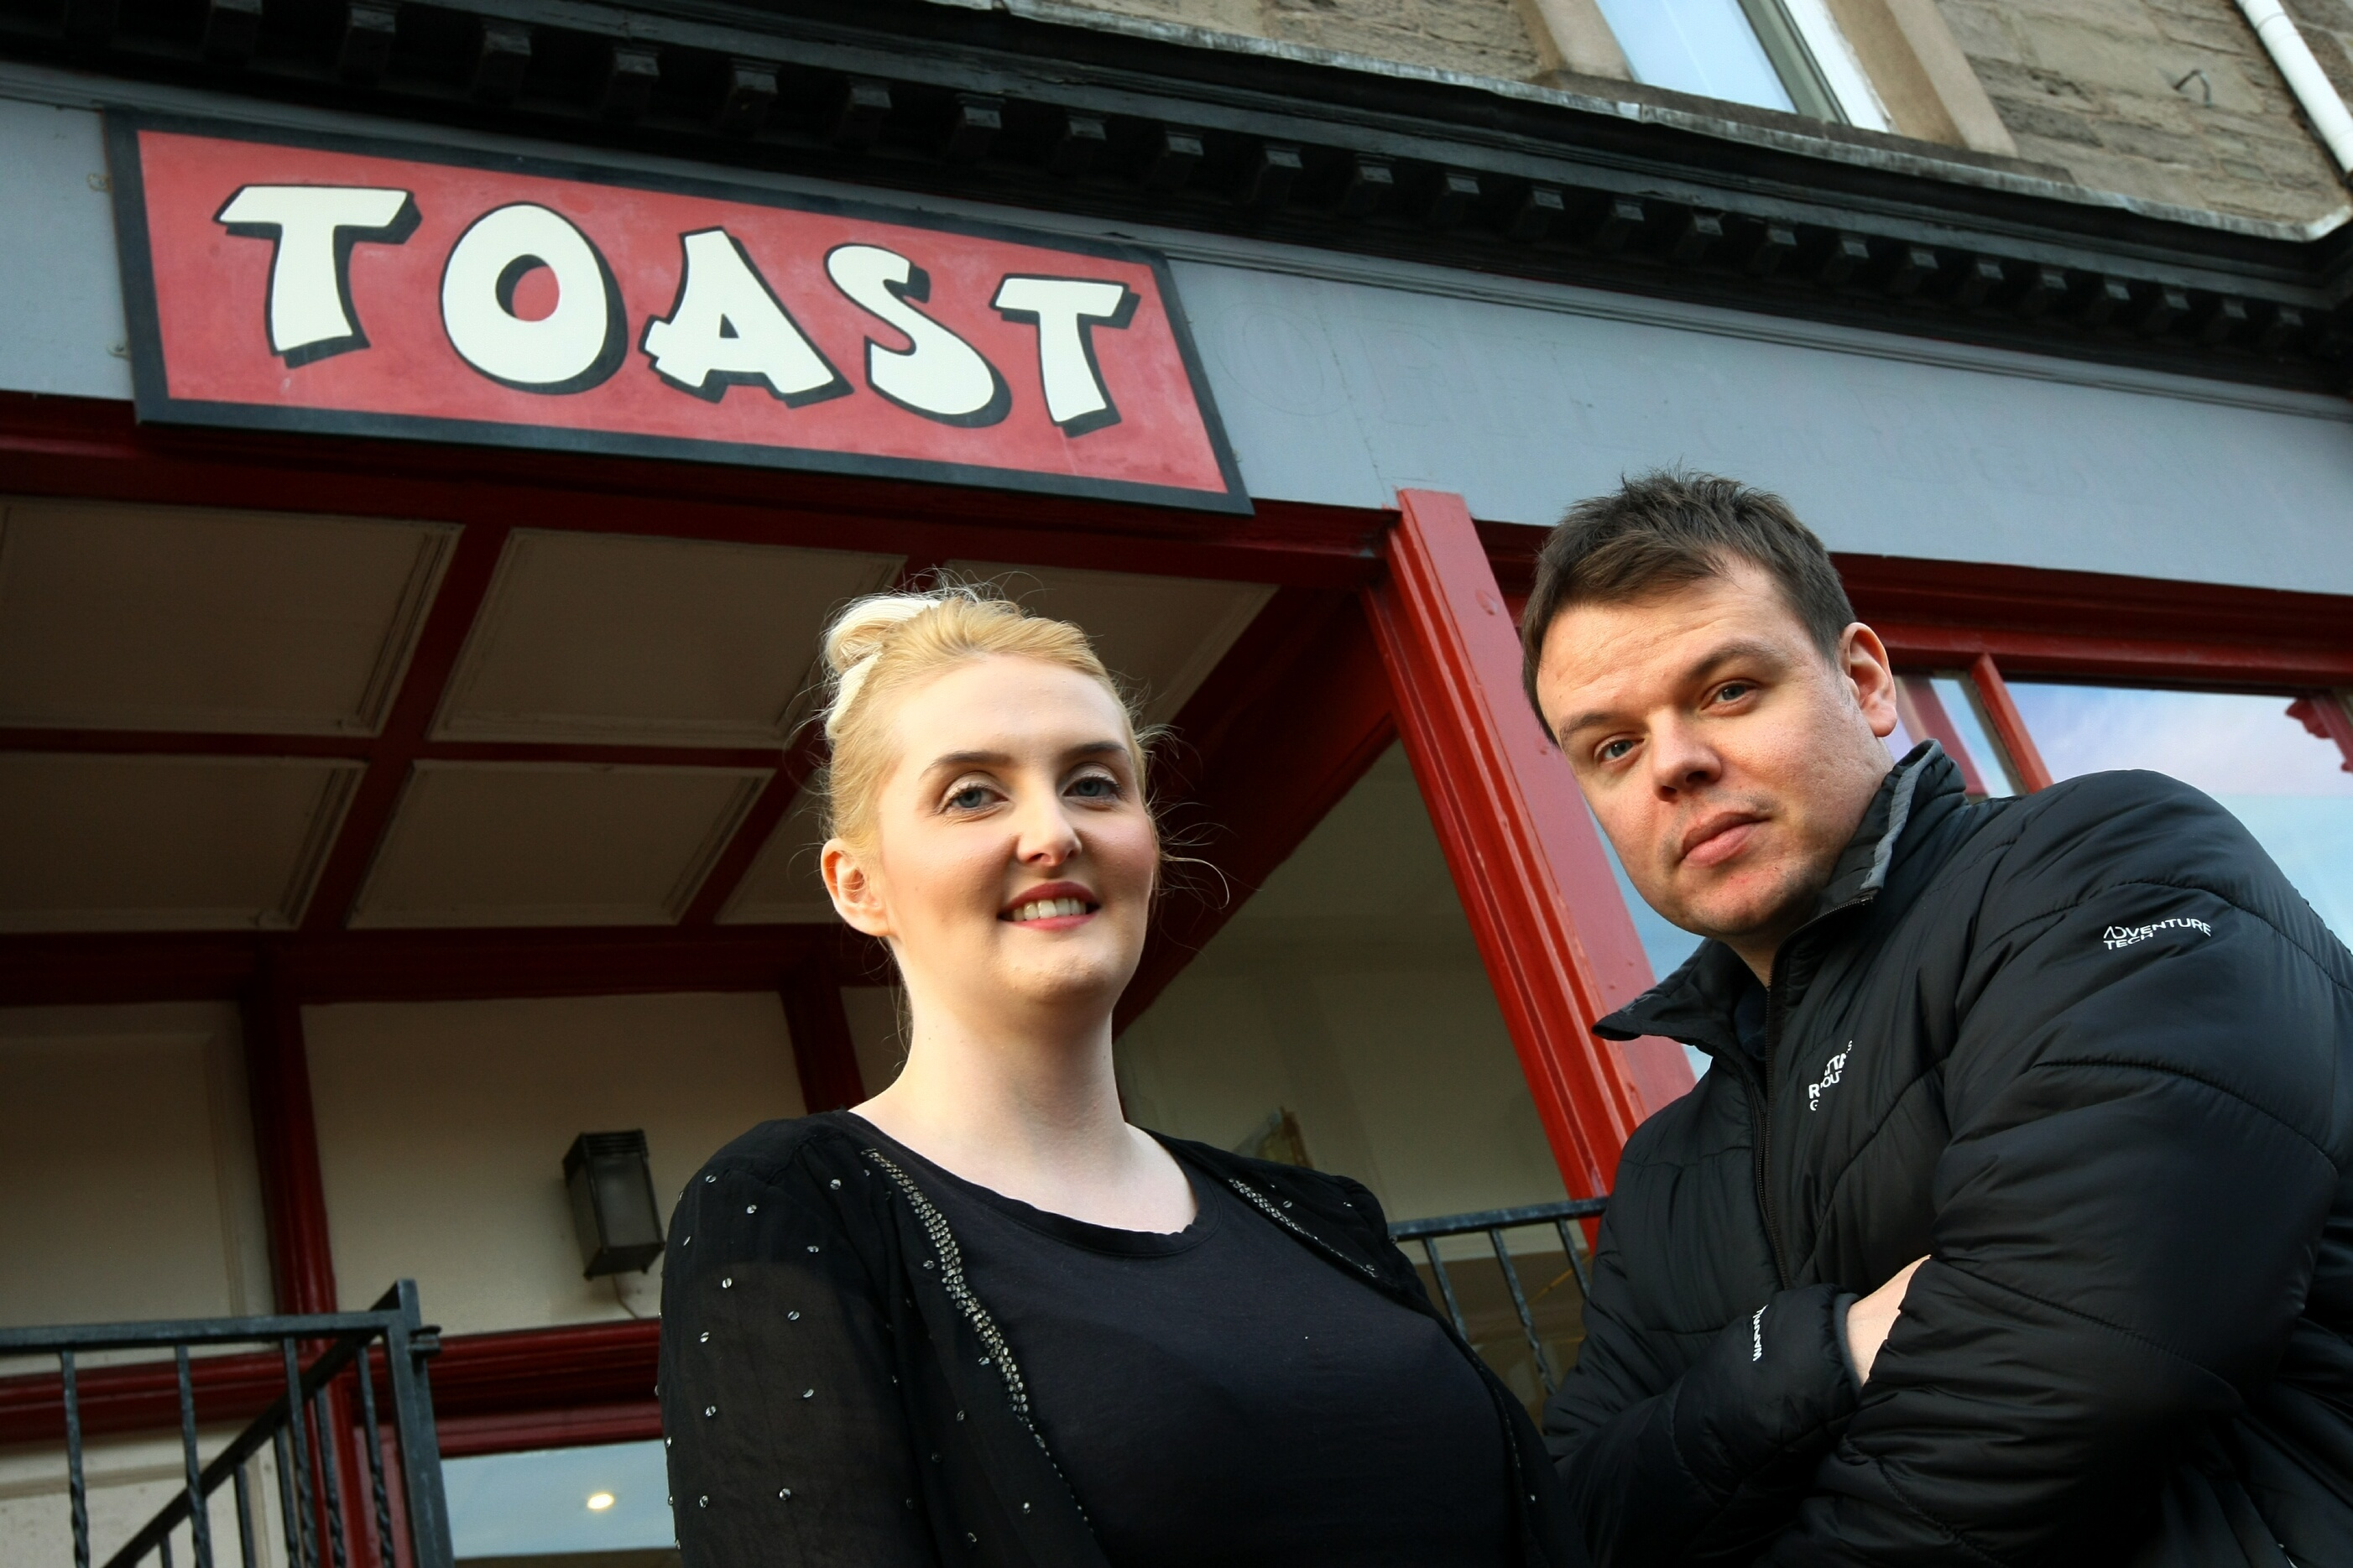 Manager Steve Sinclair, and waitress Steph Hayes, outside Toast.